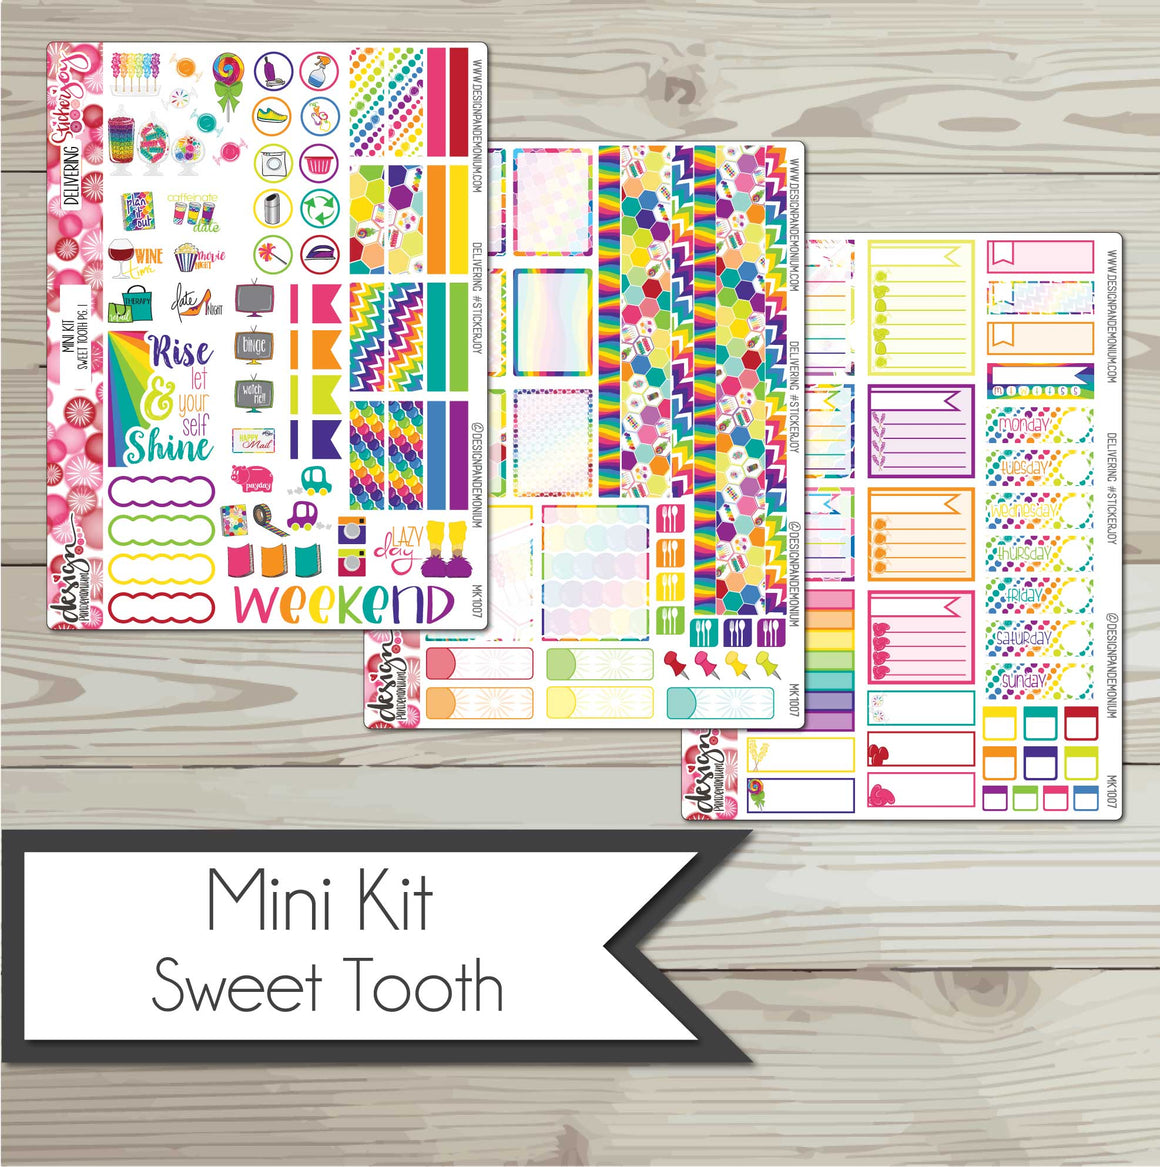 Mini Kit - Sweet Tooth